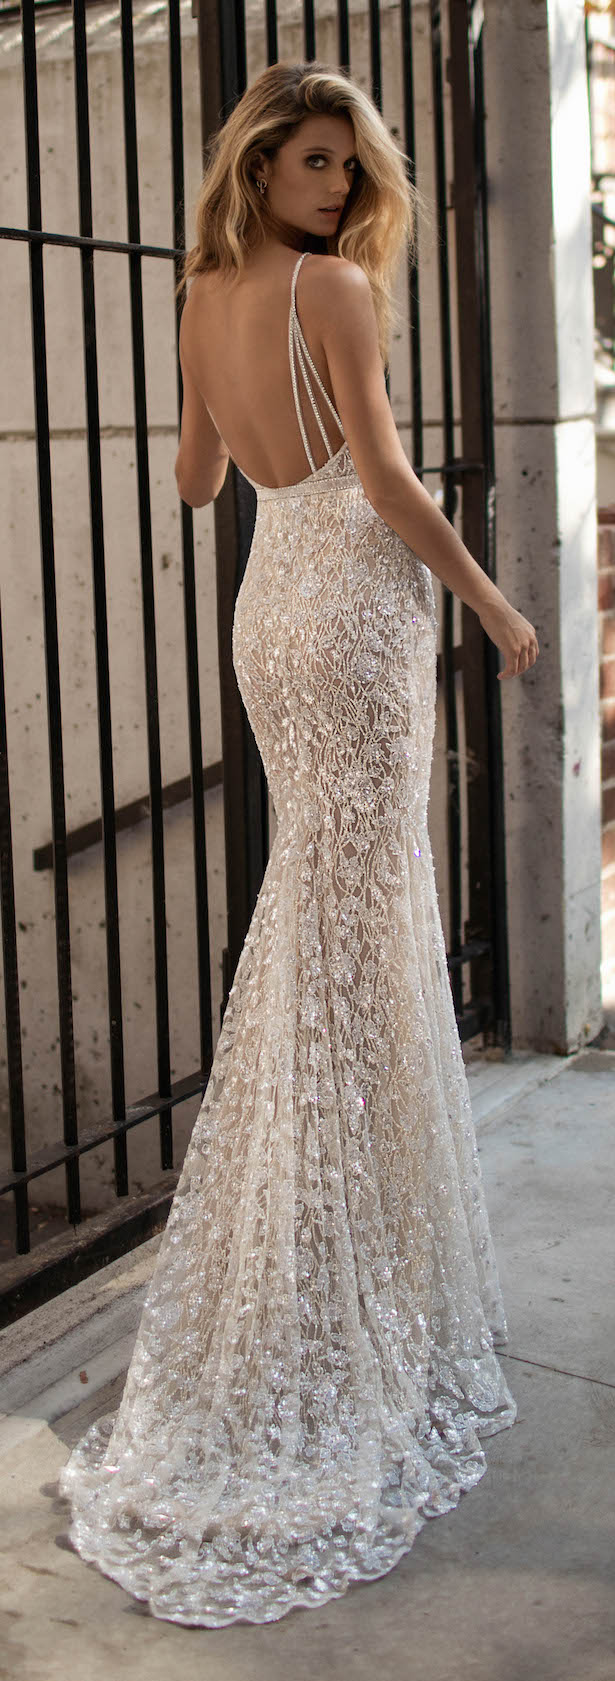 Berta bridal fall 2017 collection belle the magazine for Fall wedding dresses 2017